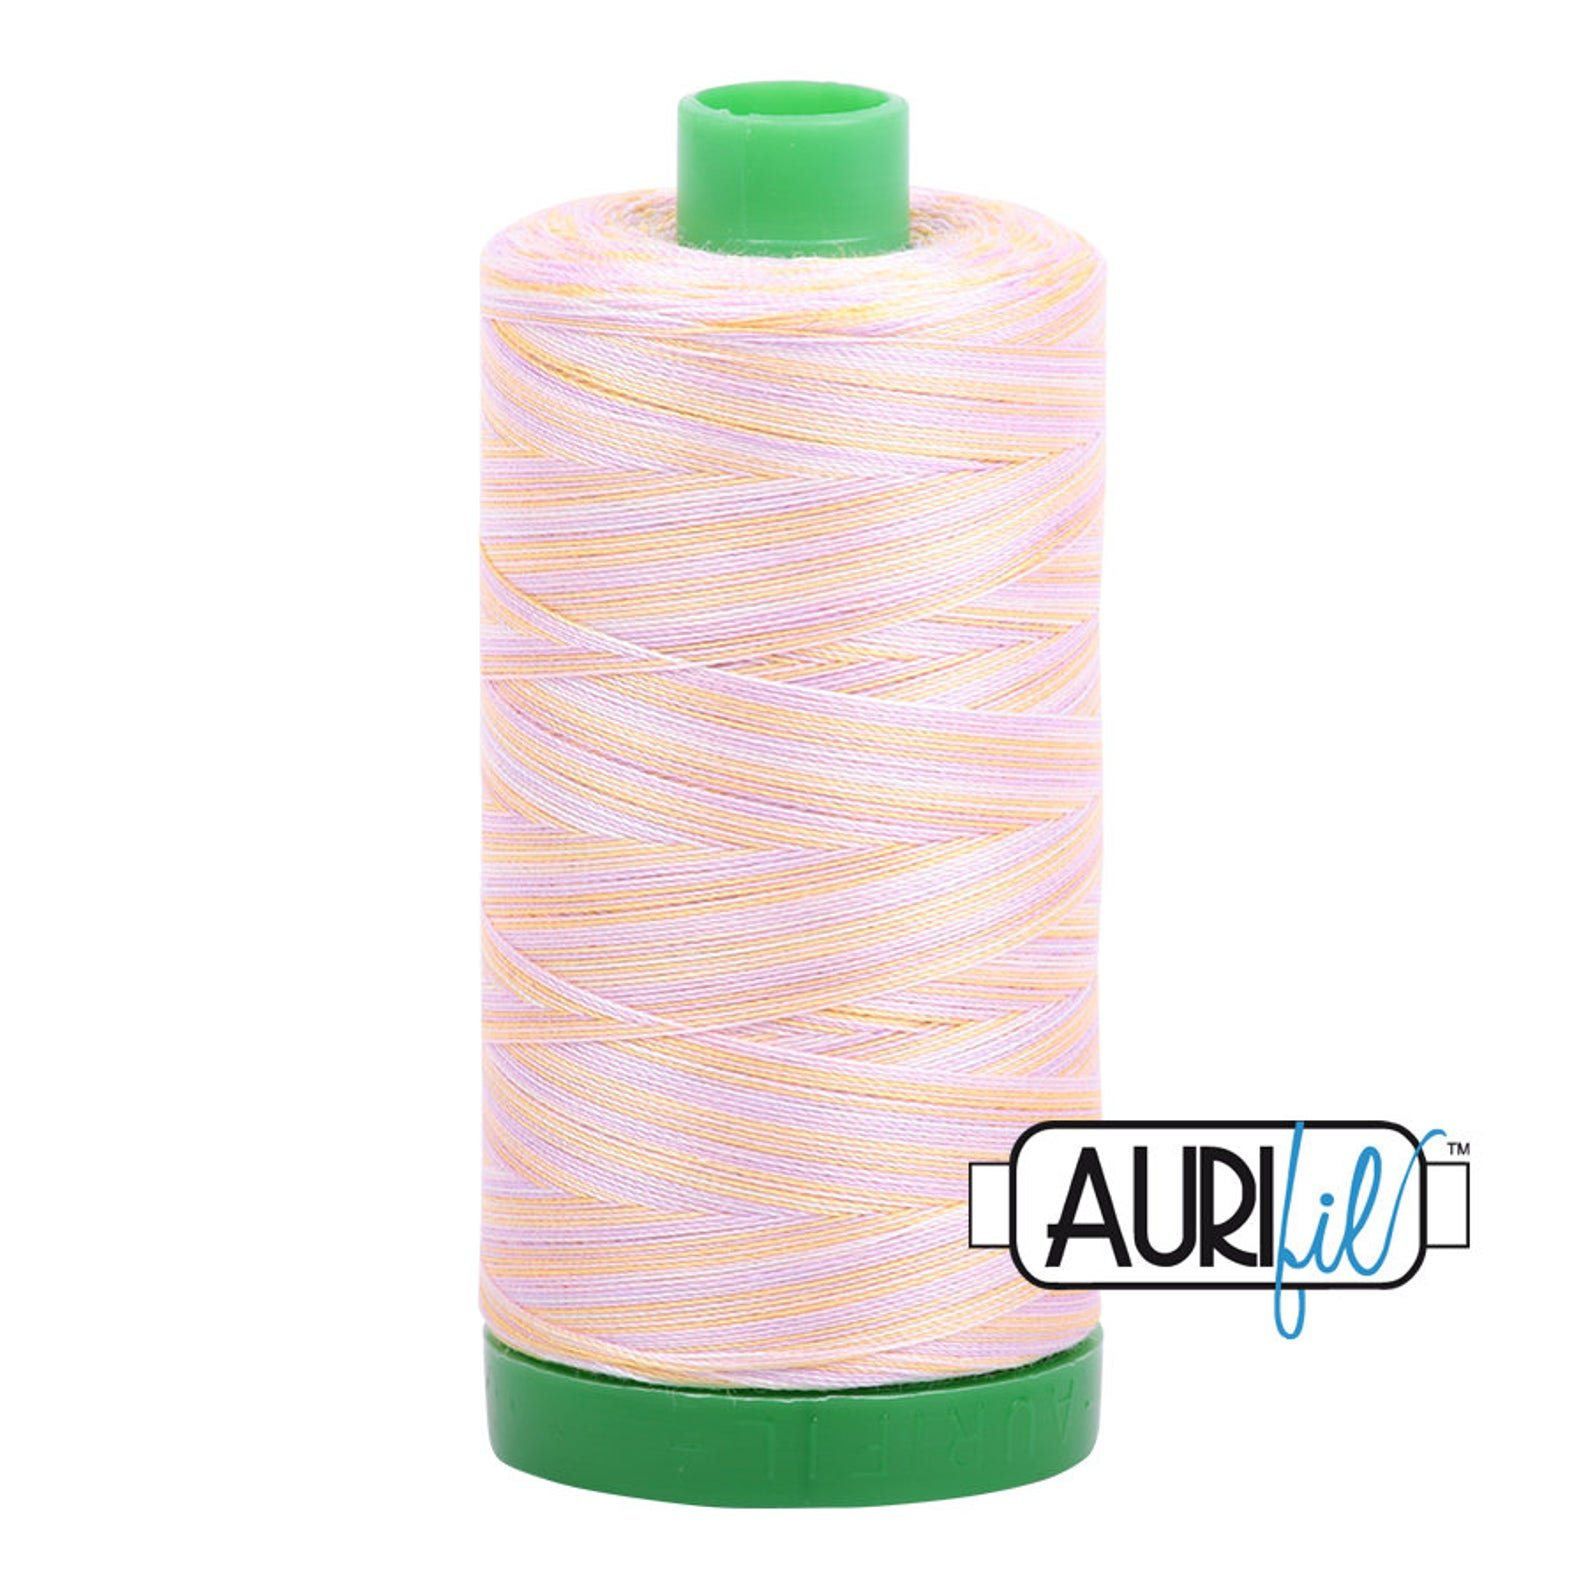 Aurifil Mako Cotton Embroidery Thread 40wt 1094yds 4651 Variegated Bari